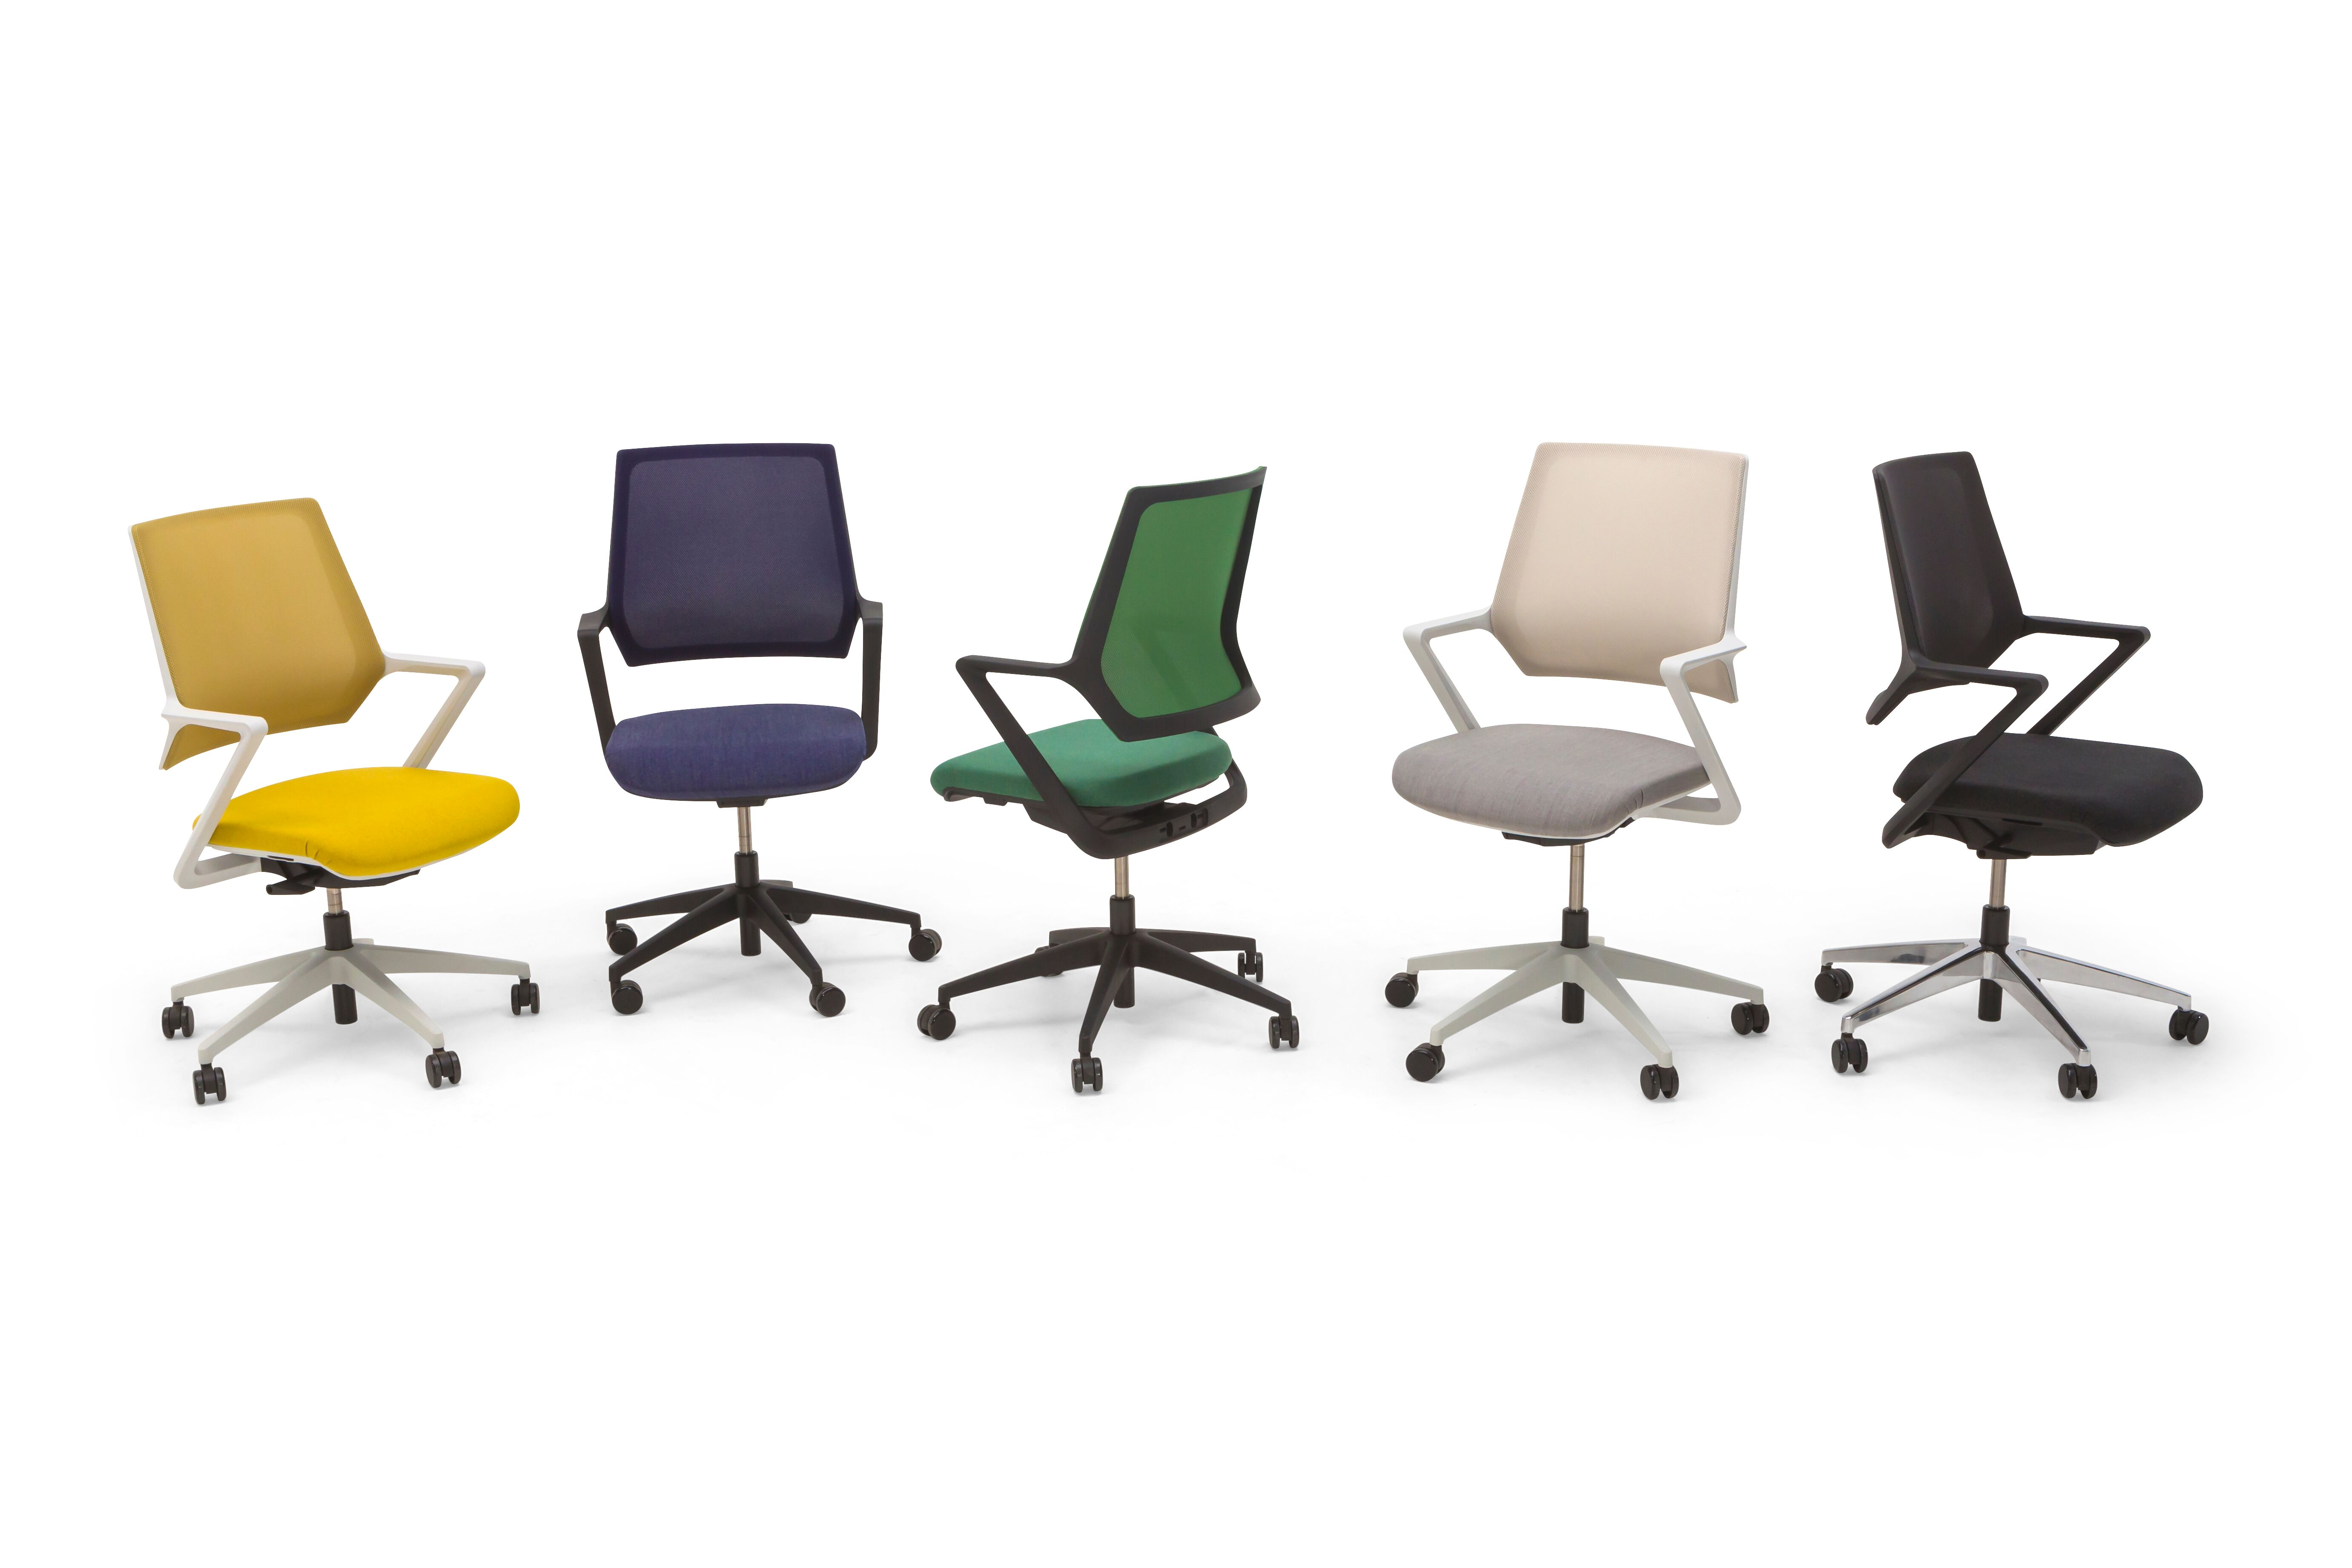 Gispen Zinn Multi task chairs range upholstered in yellow blue green white and black front view